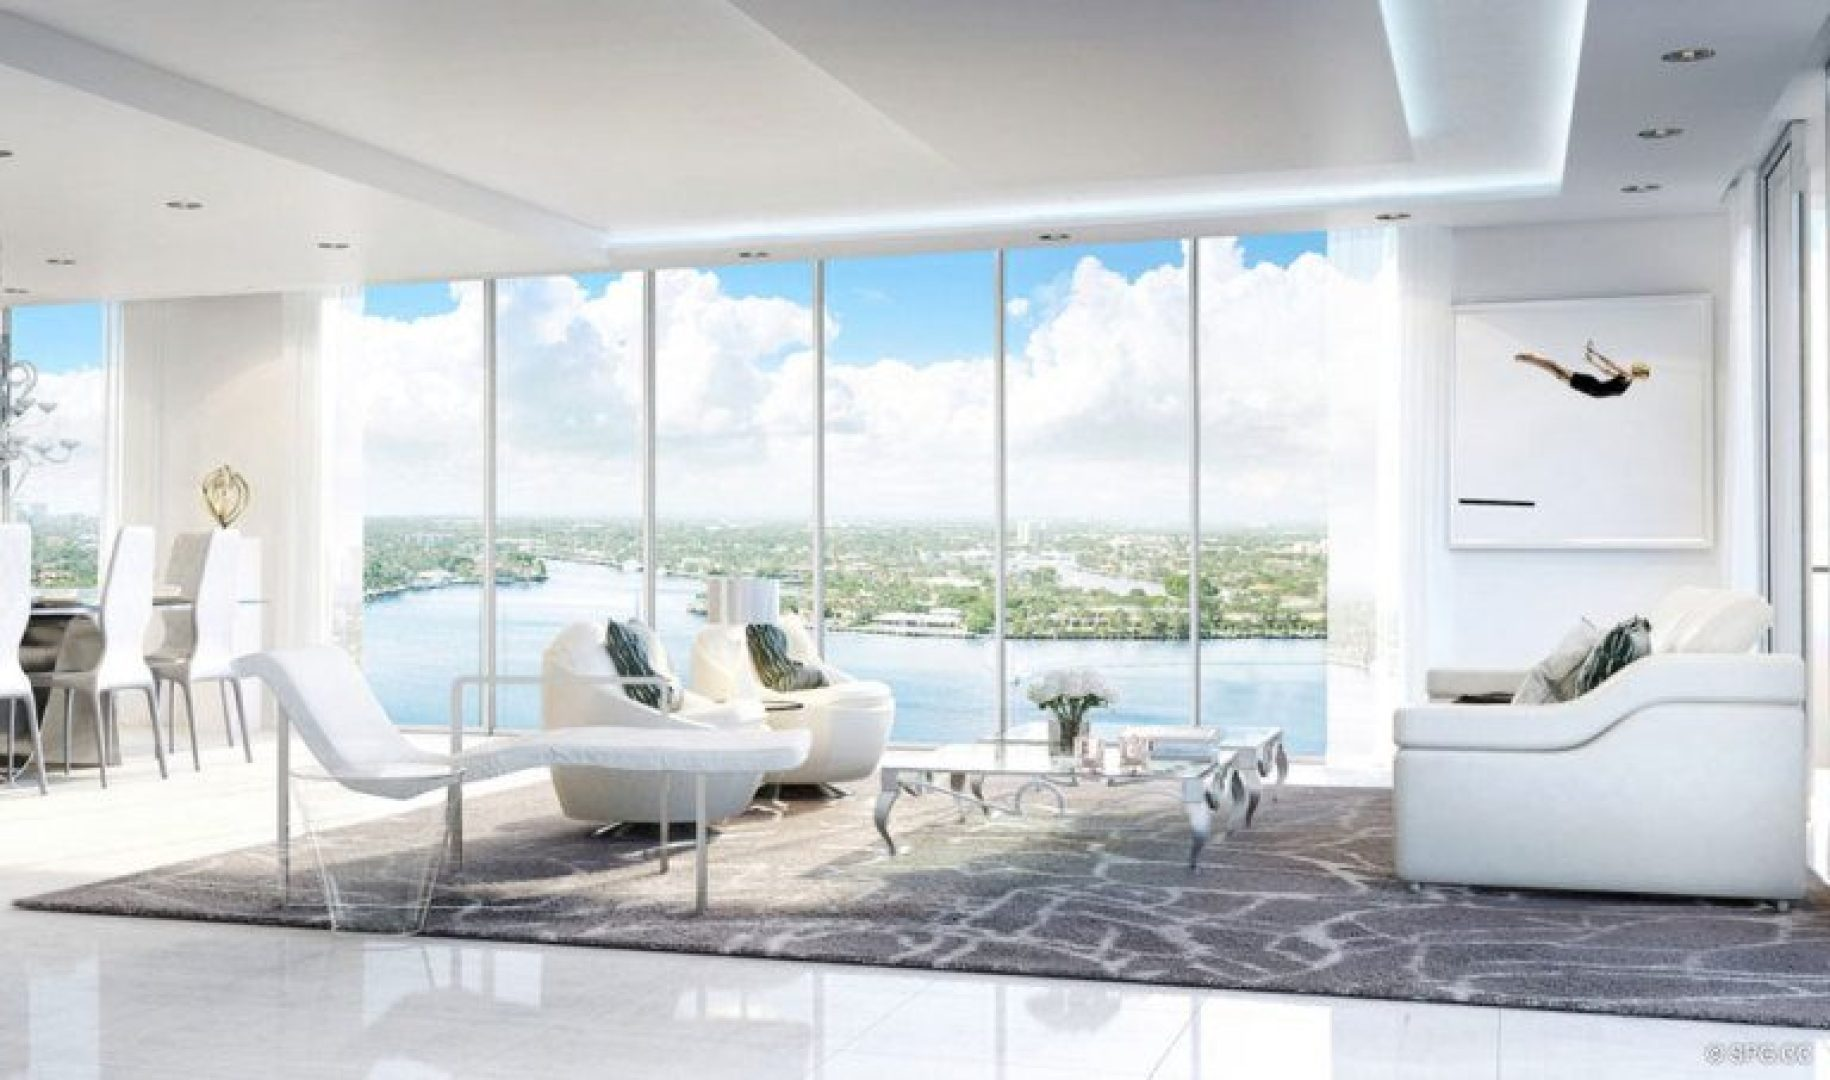 Spacious Interior Floor Plans in 321 at Water's Edge, Luxury Waterfront Condos in Fort Lauderdale, Florida 33304